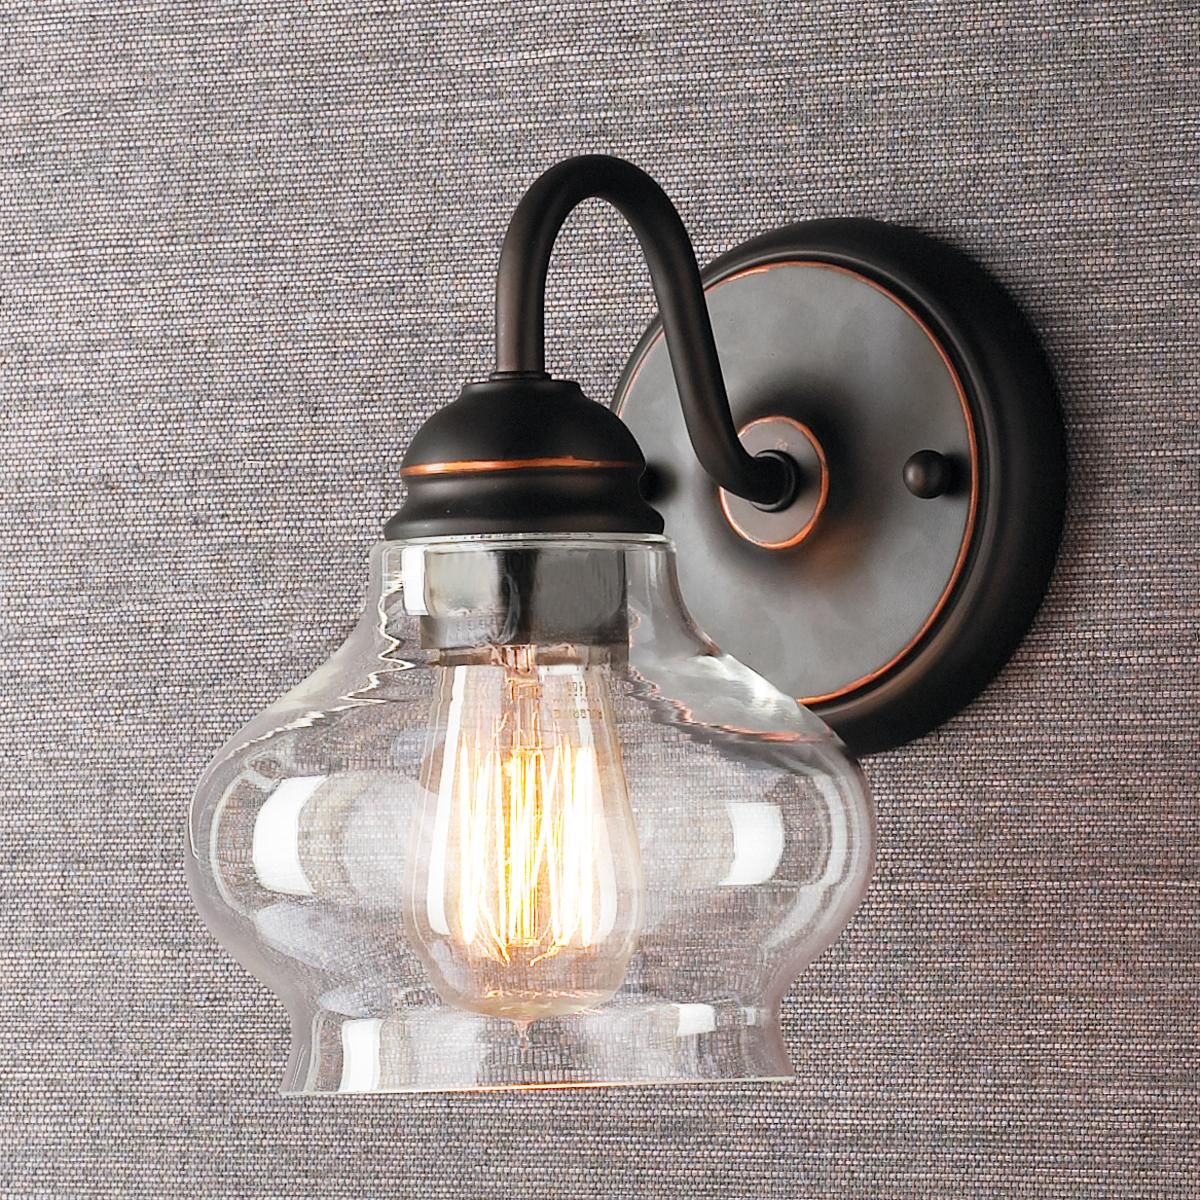 Clear Cloche Glass Sconce Rustic Bathroom Lighting Bathroom Light Fixtures Bathroom Sconces